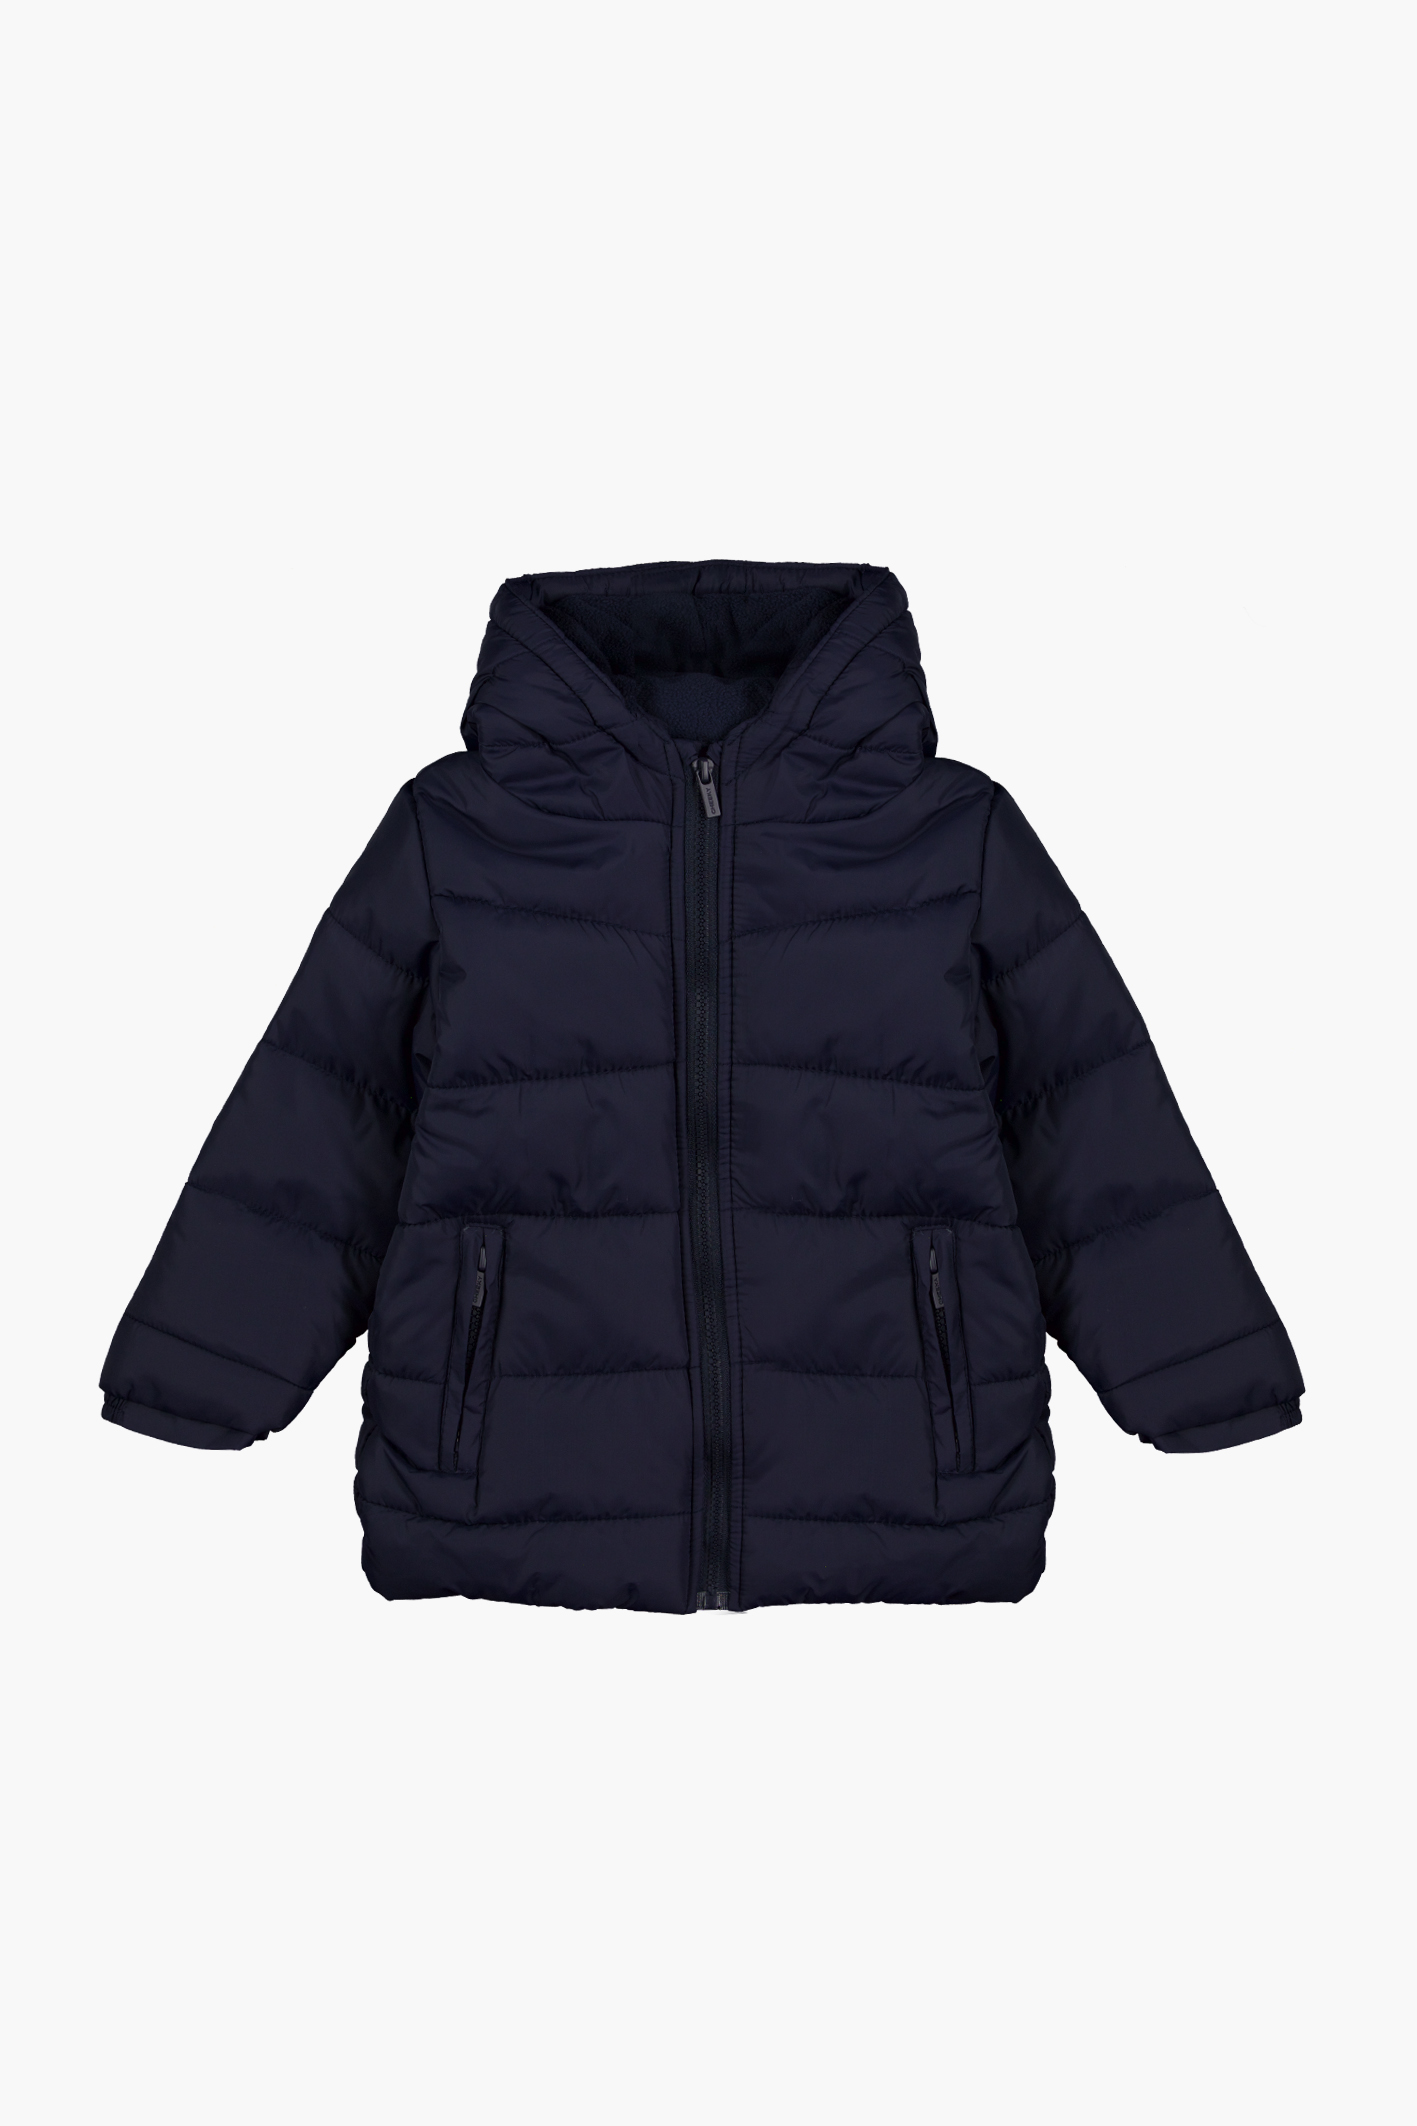 cheeky_campera-new-basic-kids-2-14_22-25-2020__picture-51536